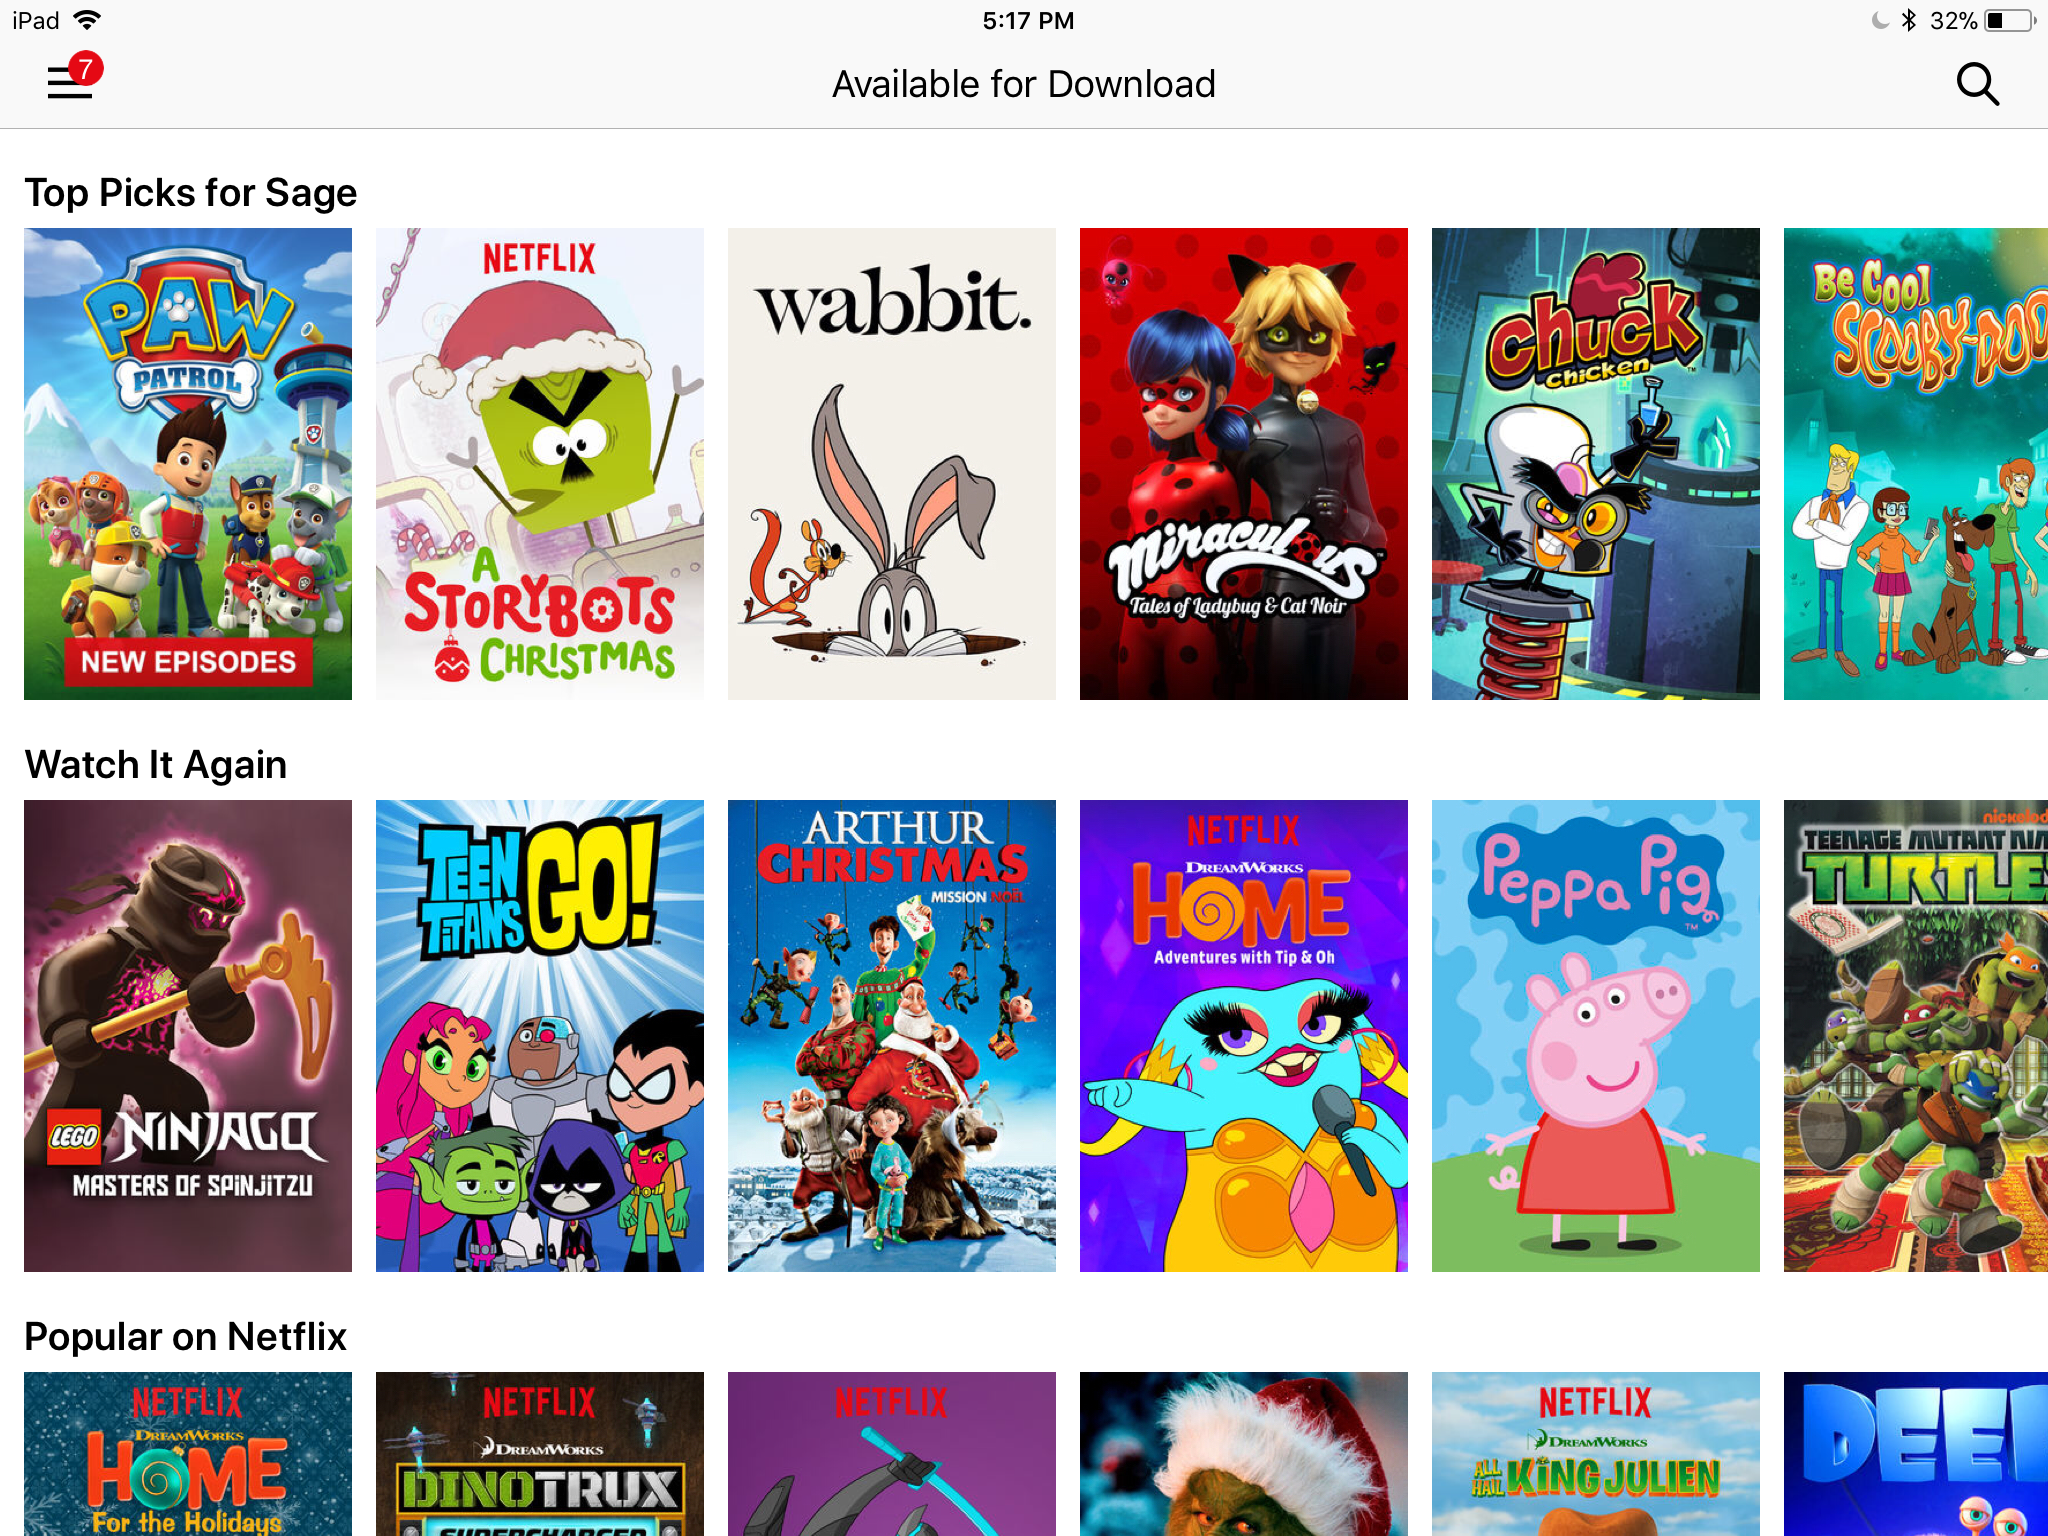 Entertain on the Go with Netflix Downloads #StreamTeam - My